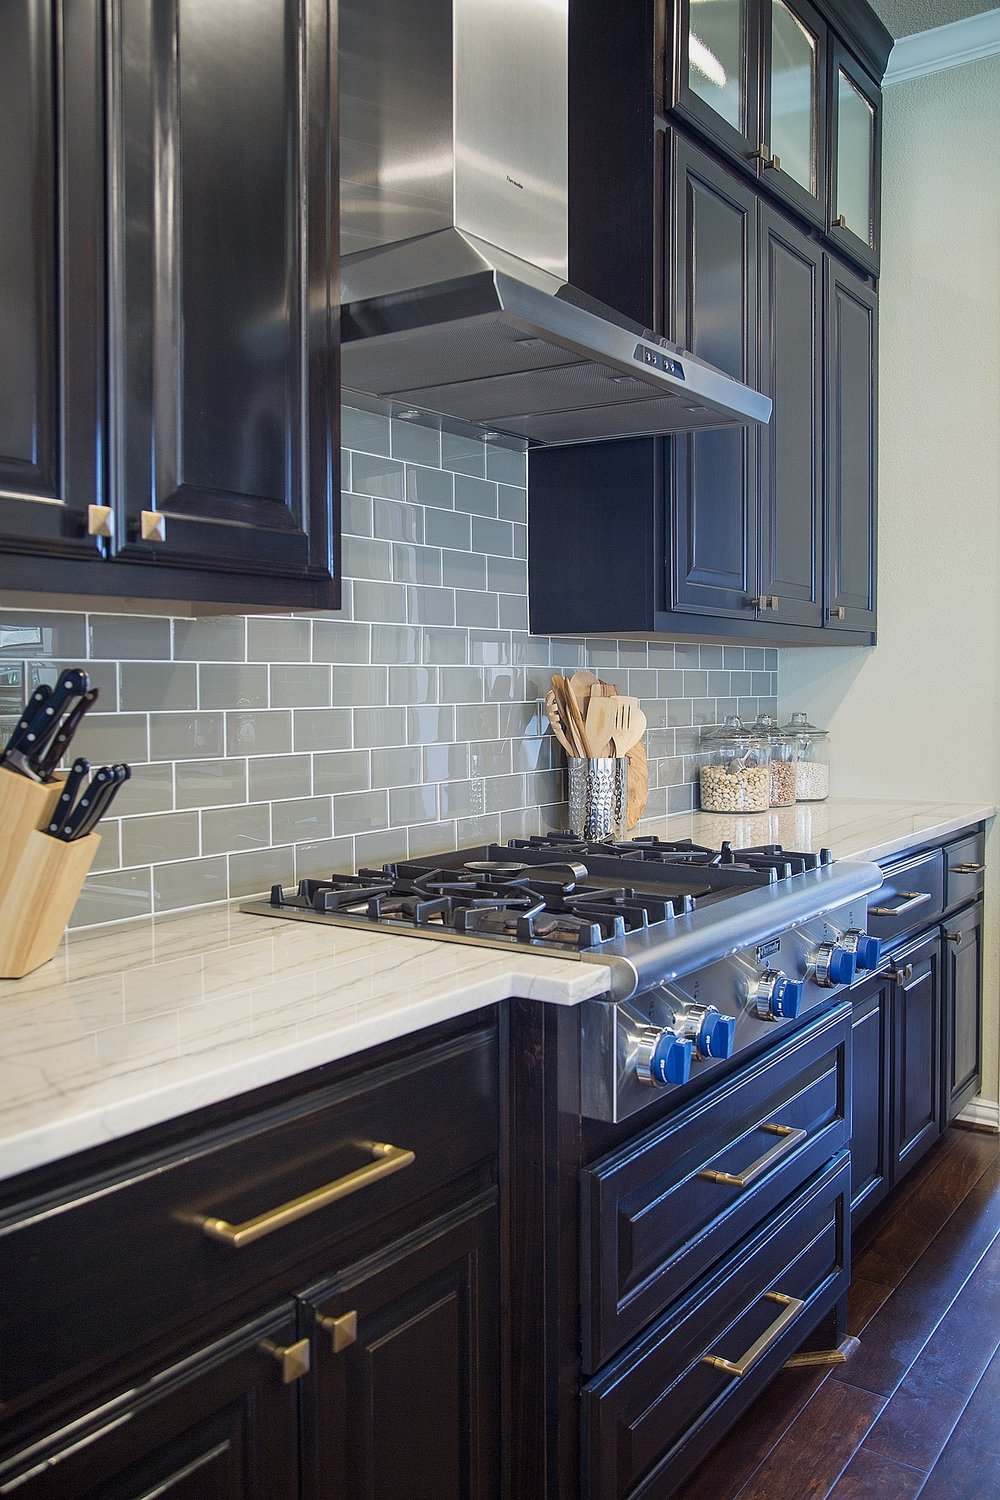 Macabus White Countertops -  Kitchen Remodel,  Carla Aston - Designer, Tori Aston - Photographer